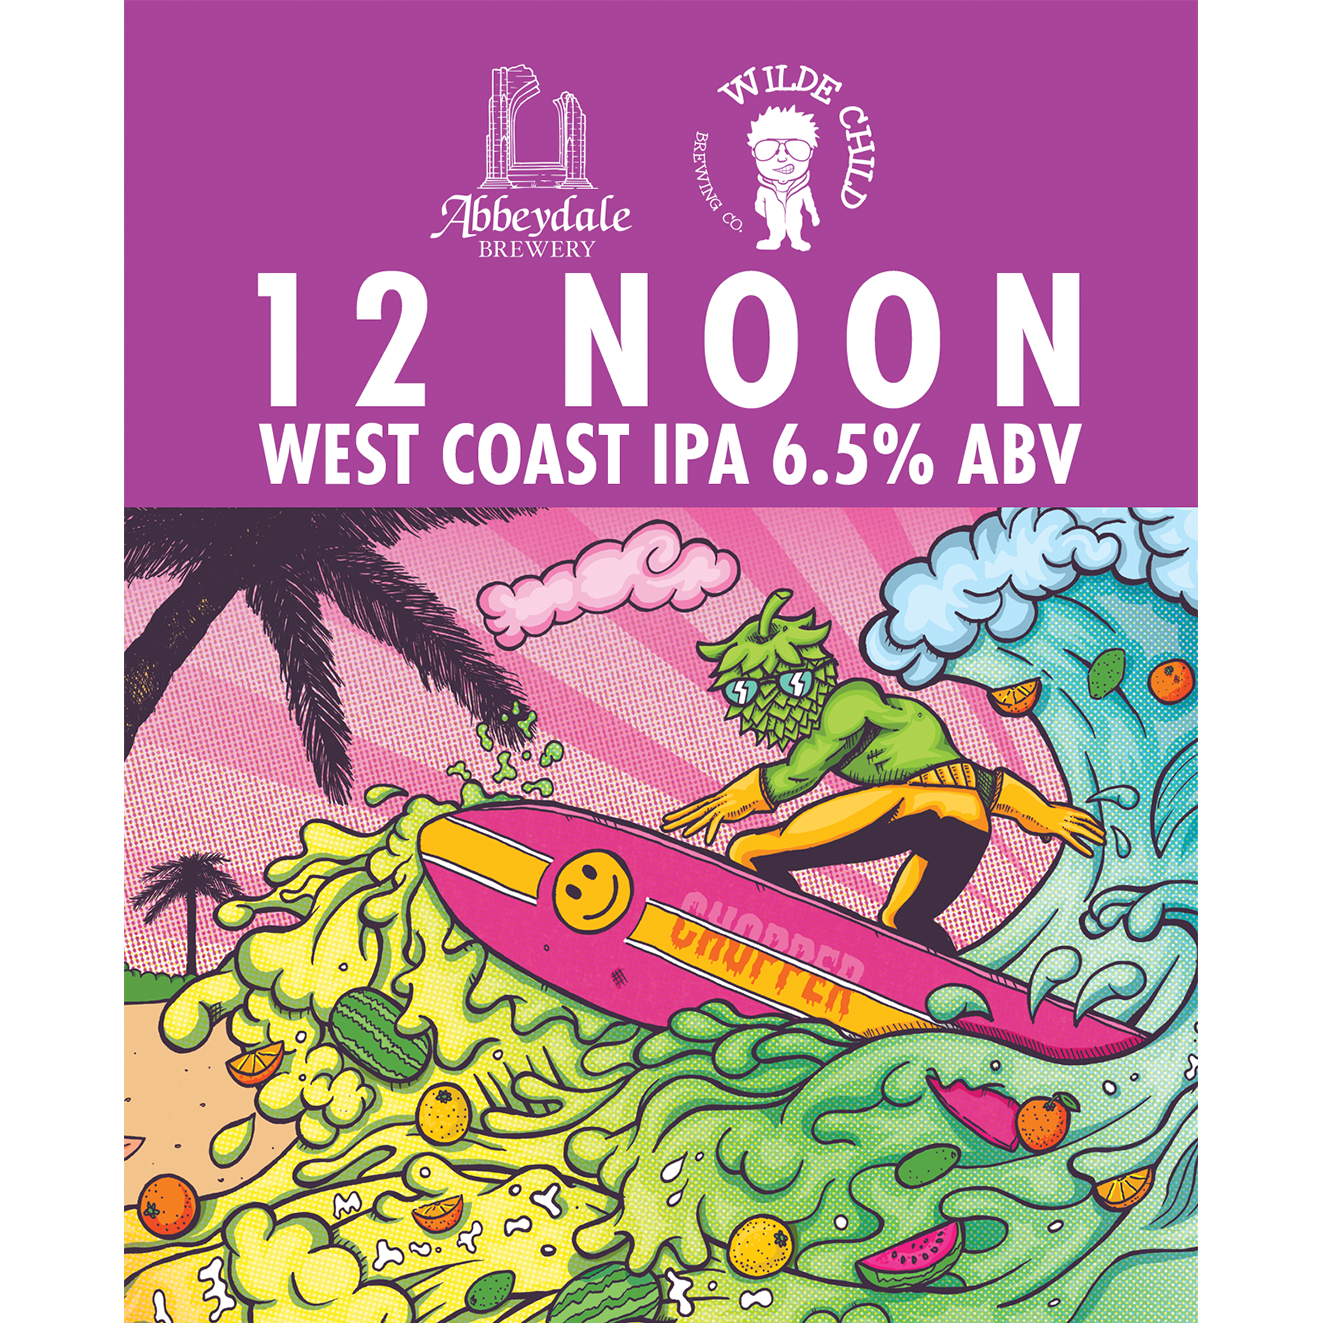 Craft Beer Label Illustration - Abbeydale Brewery - Wilde Child Brewery - 12 Noon - West Coast IPA Cask Artwork